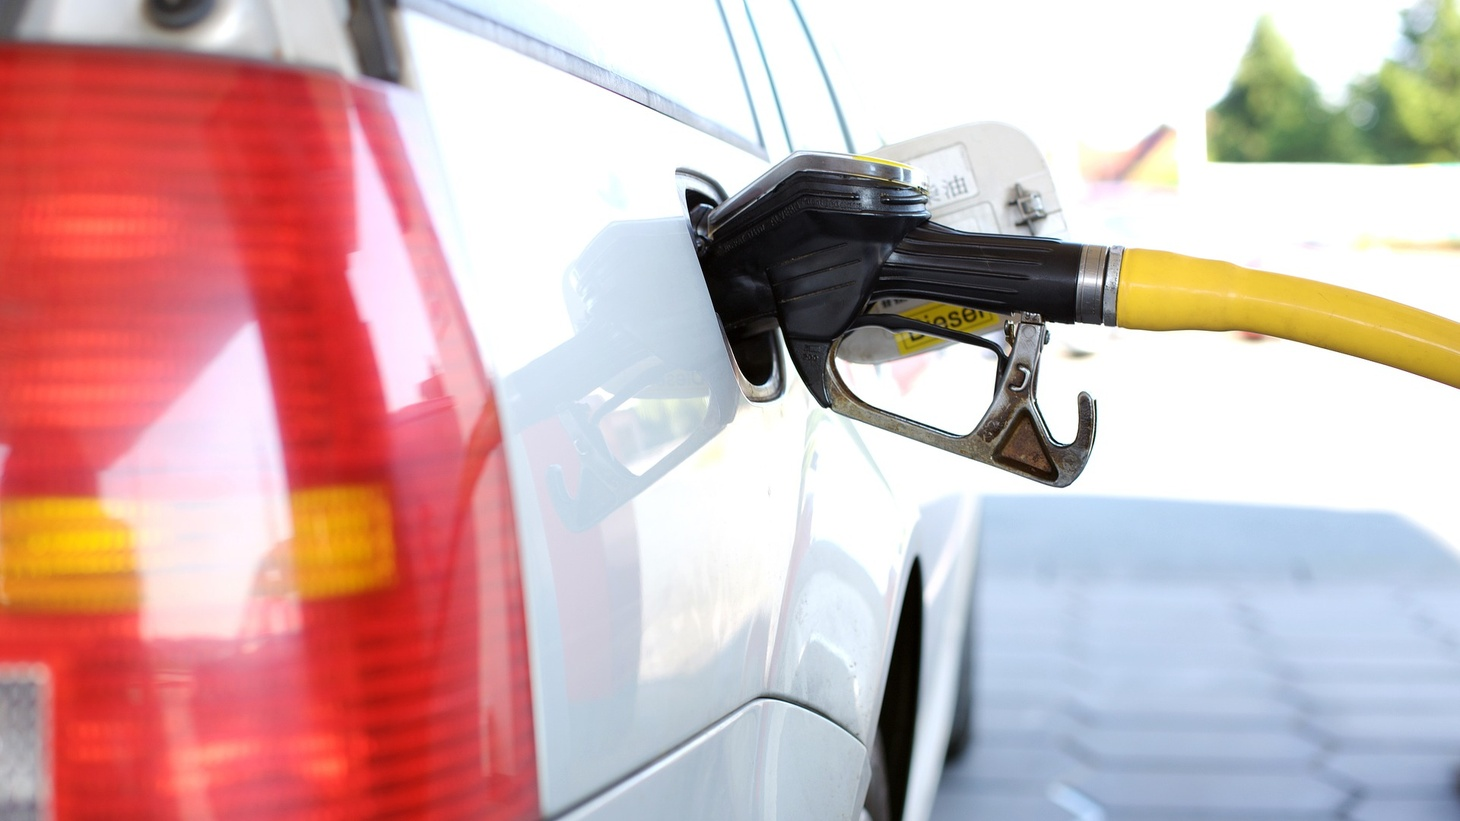 Gas stations could turn into public parks or charging stations once new gas-powered cars are banned in California.